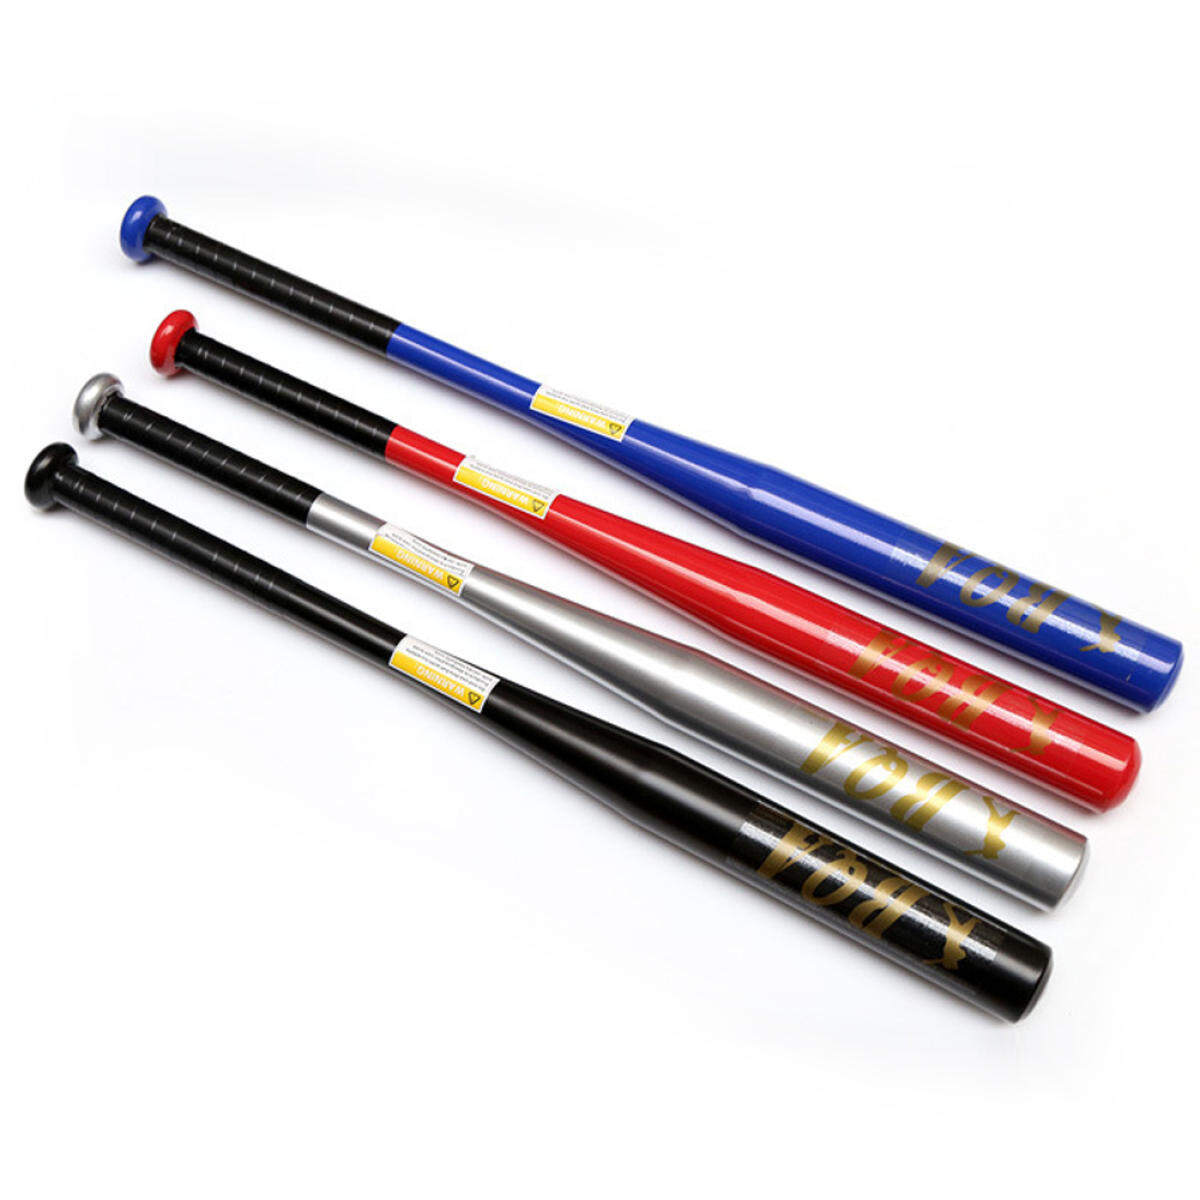 1pc 63cm Aluminum Alloy Baseball Color Bat Racket Random By Vjsgjva.